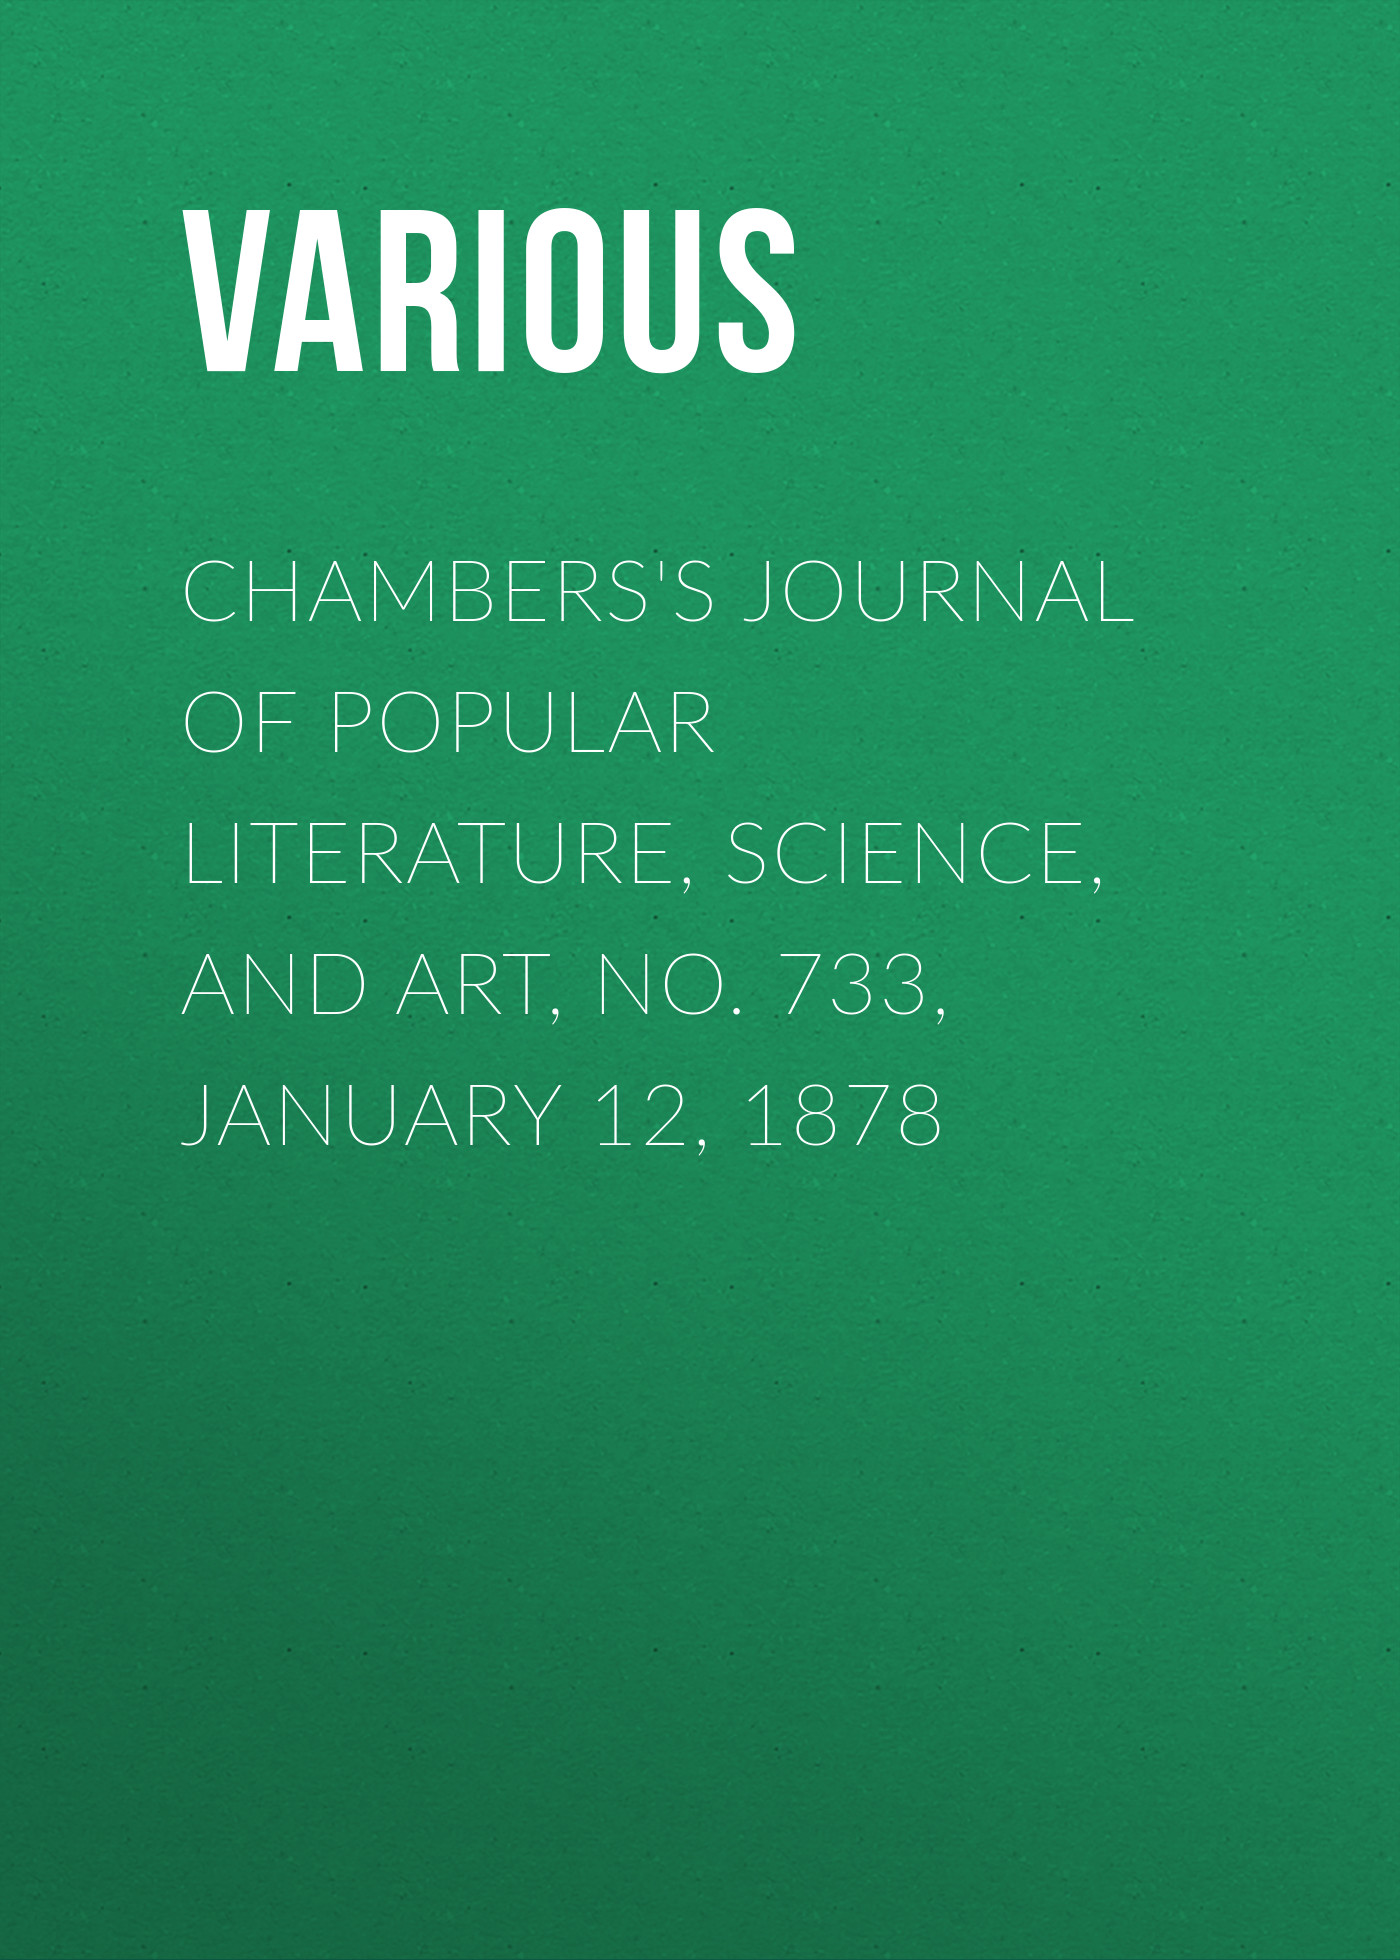 Chambers\'s Journal of Popular Literature, Science, and Art, No. 733, January 12, 1878 ( Various  )